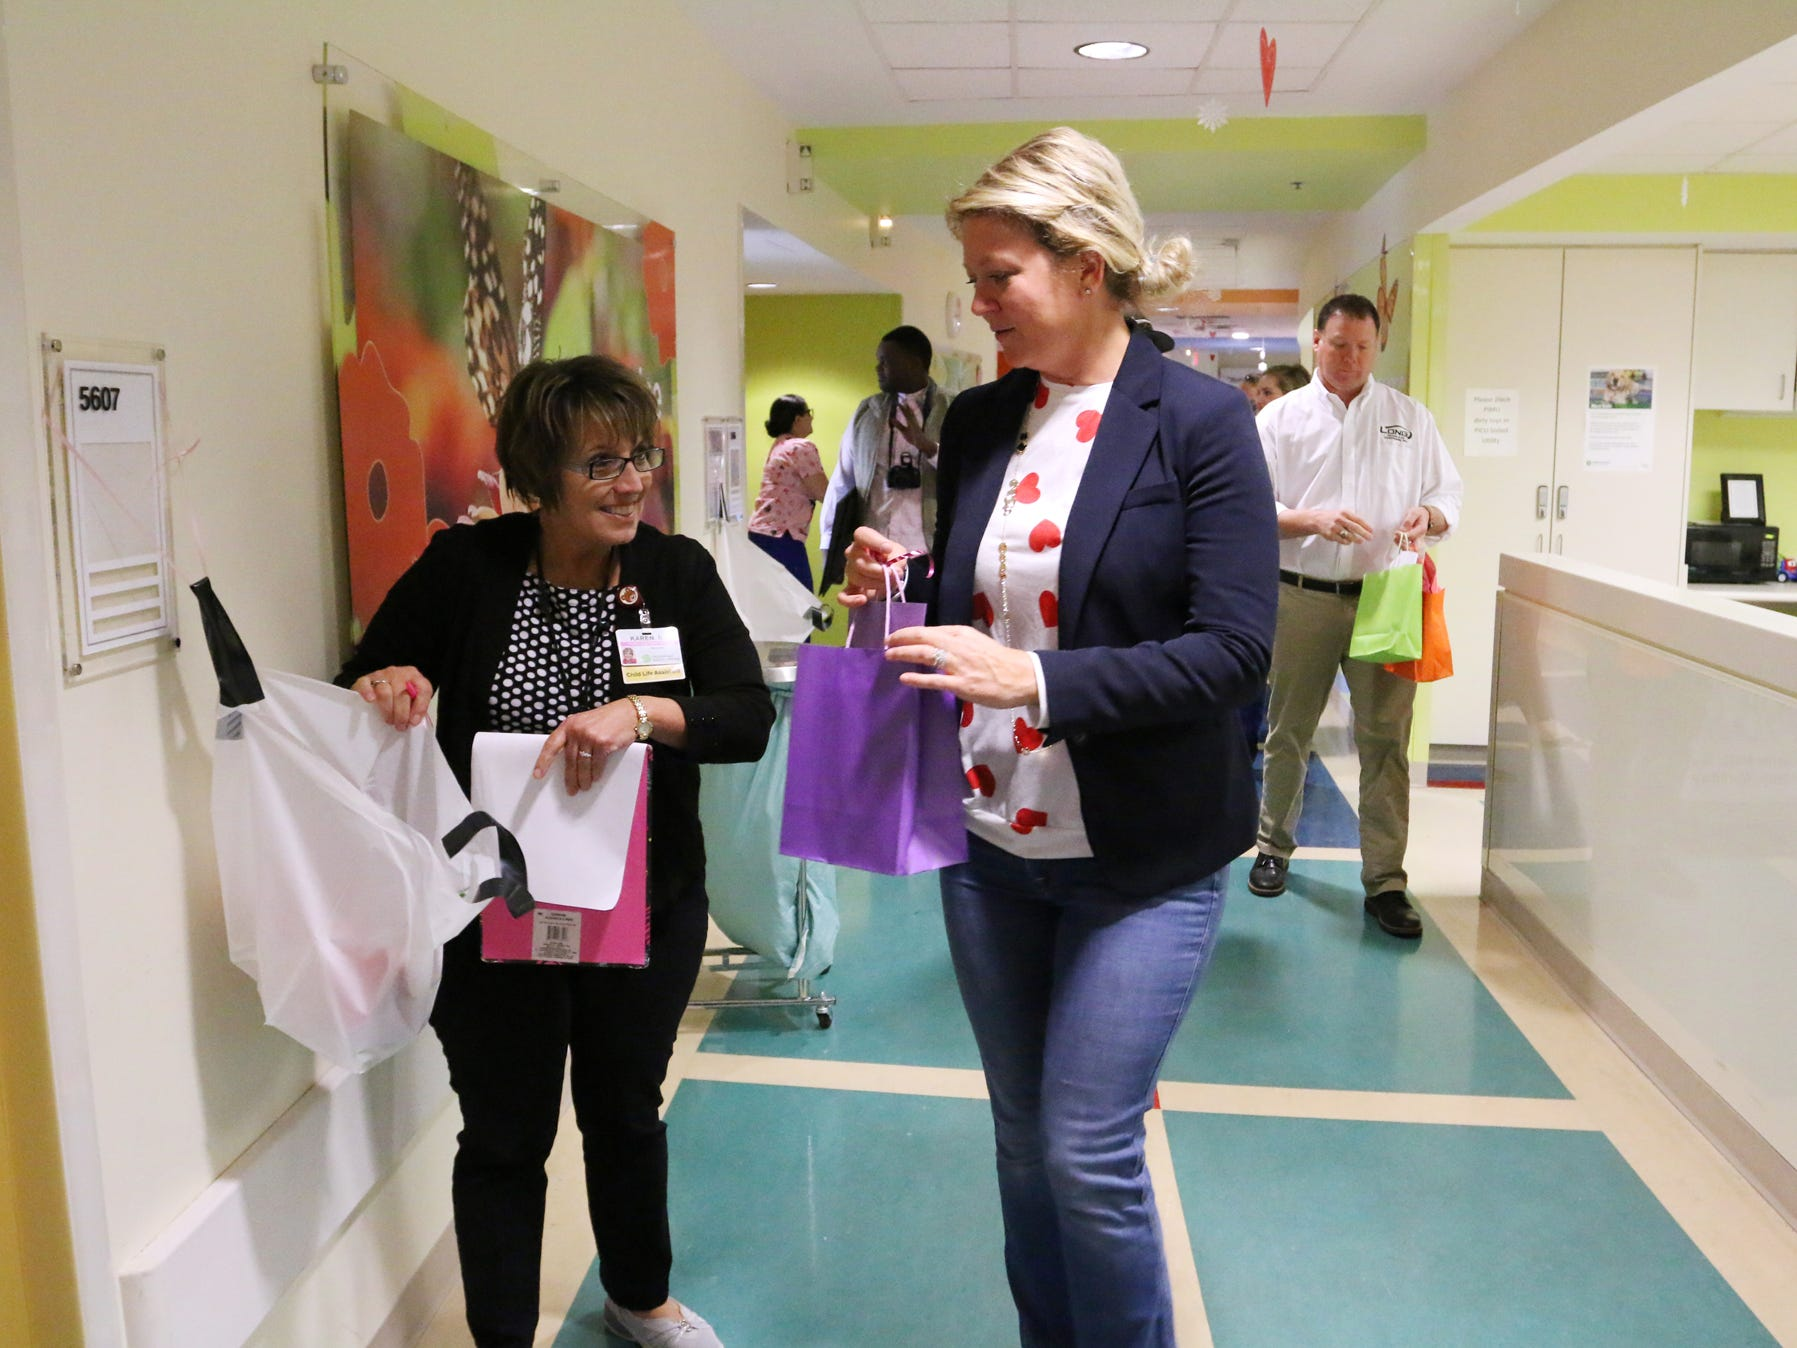 Melissa Long helps deliver Valentine's Day cards that were made for the children at the Prisma Health Children's Hospital.